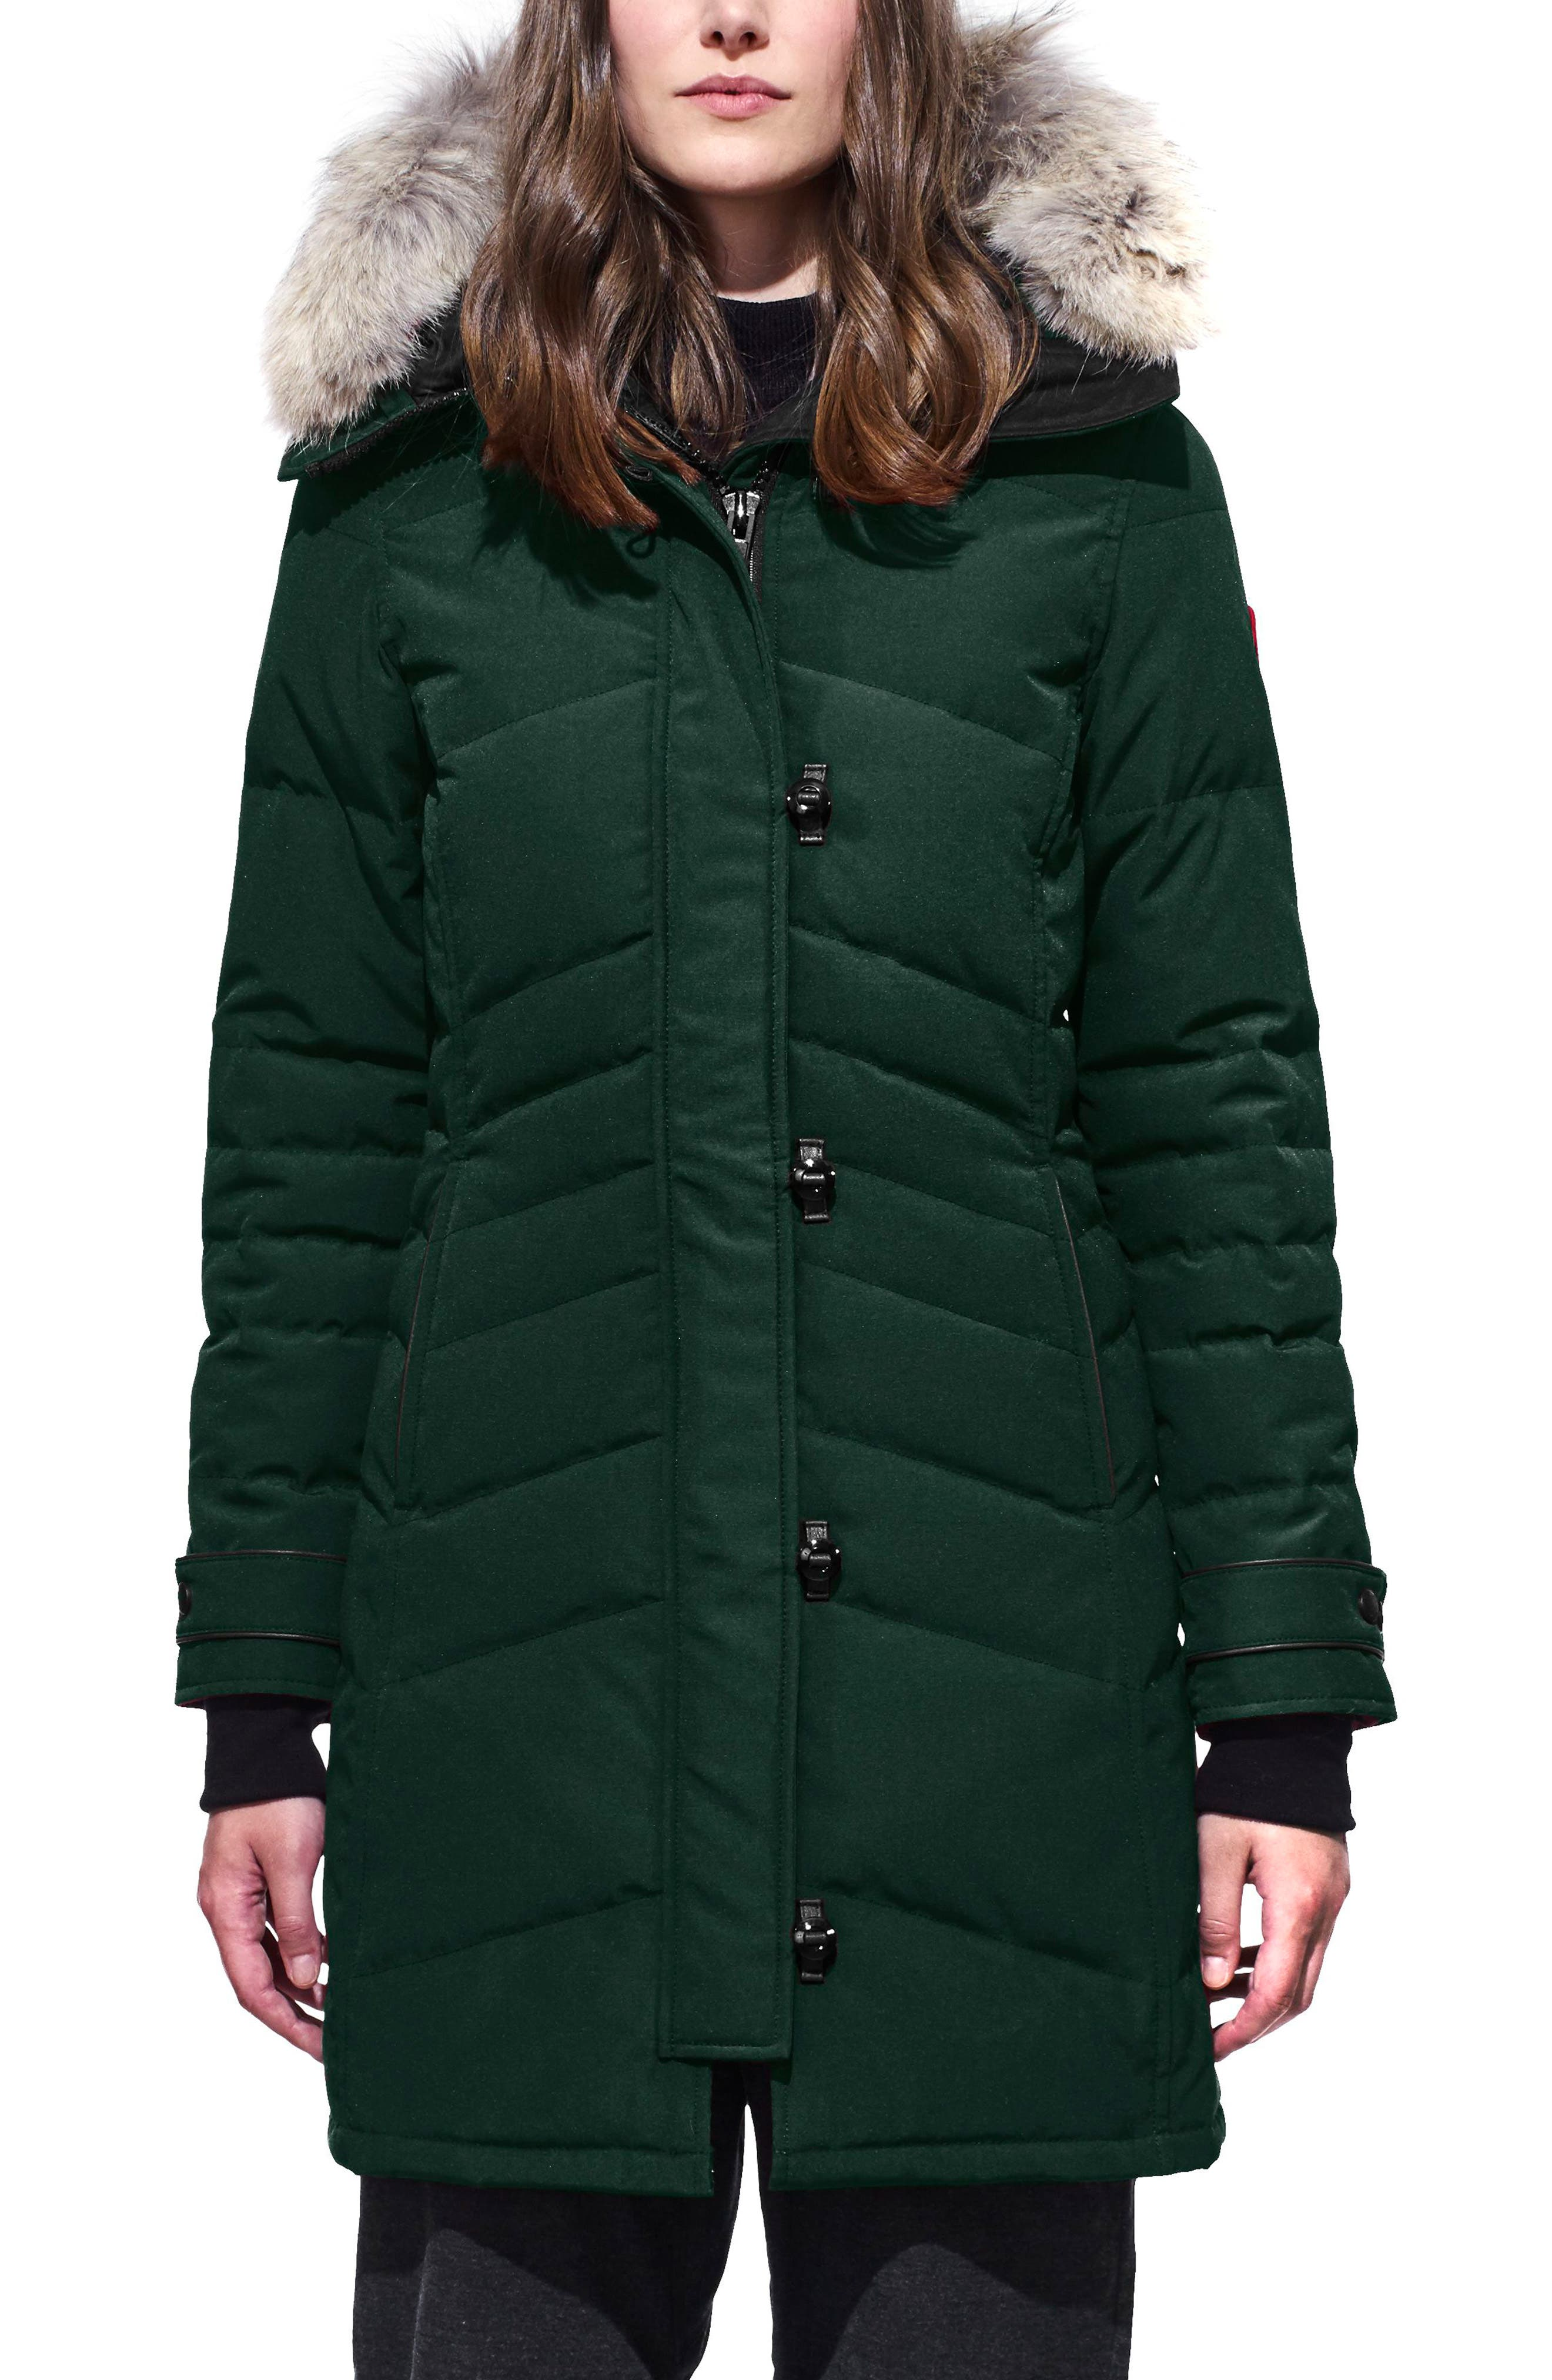 'Lorette' Hooded Down Parka with Genuine Coyote Fur Trim,                             Main thumbnail 1, color,                             NAVY